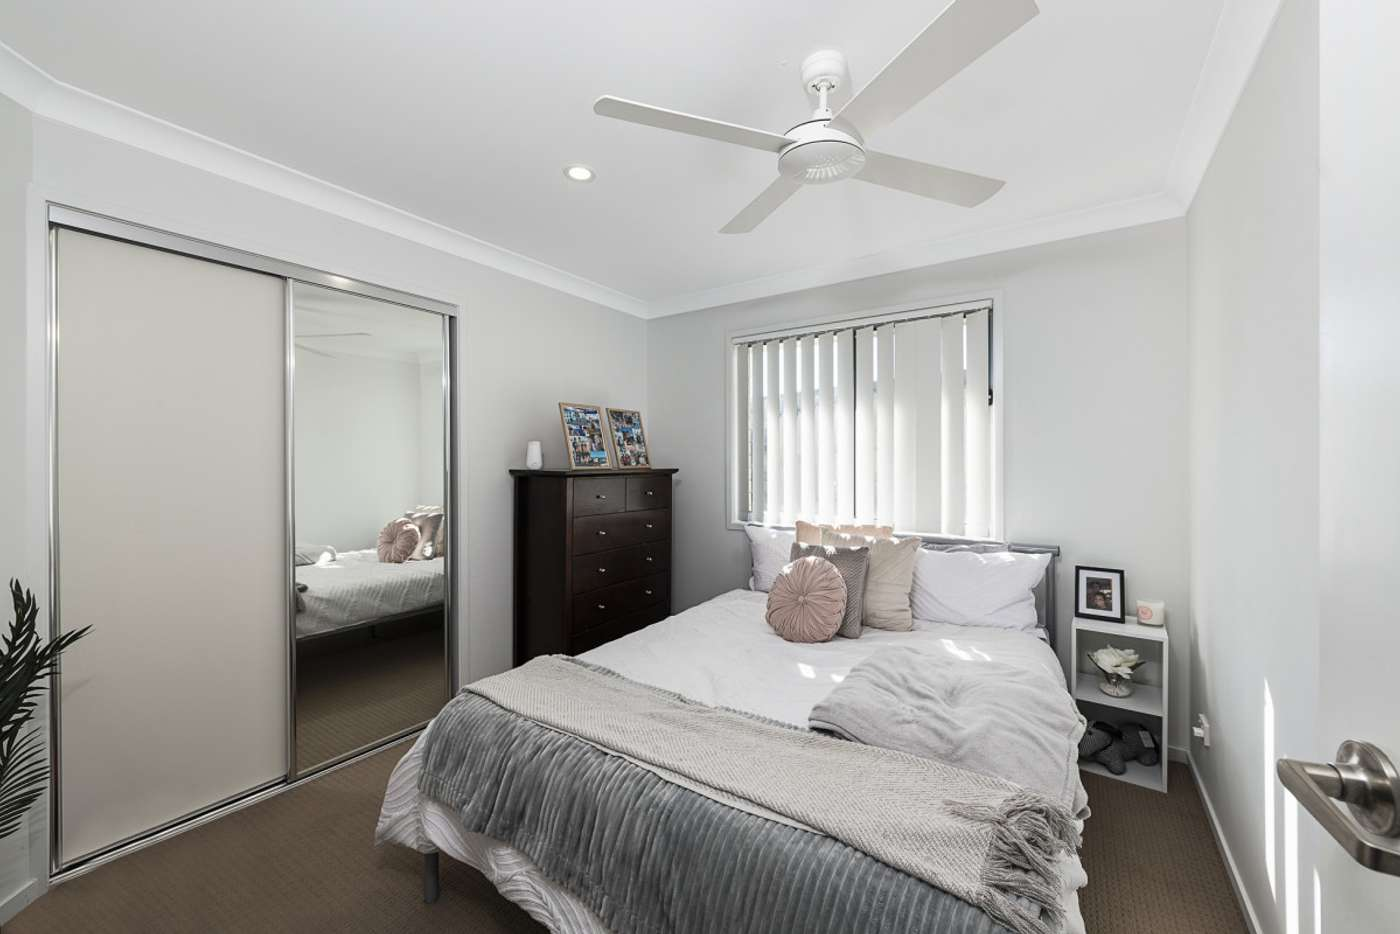 Sixth view of Homely house listing, 13 Reef Court, Bargara QLD 4670